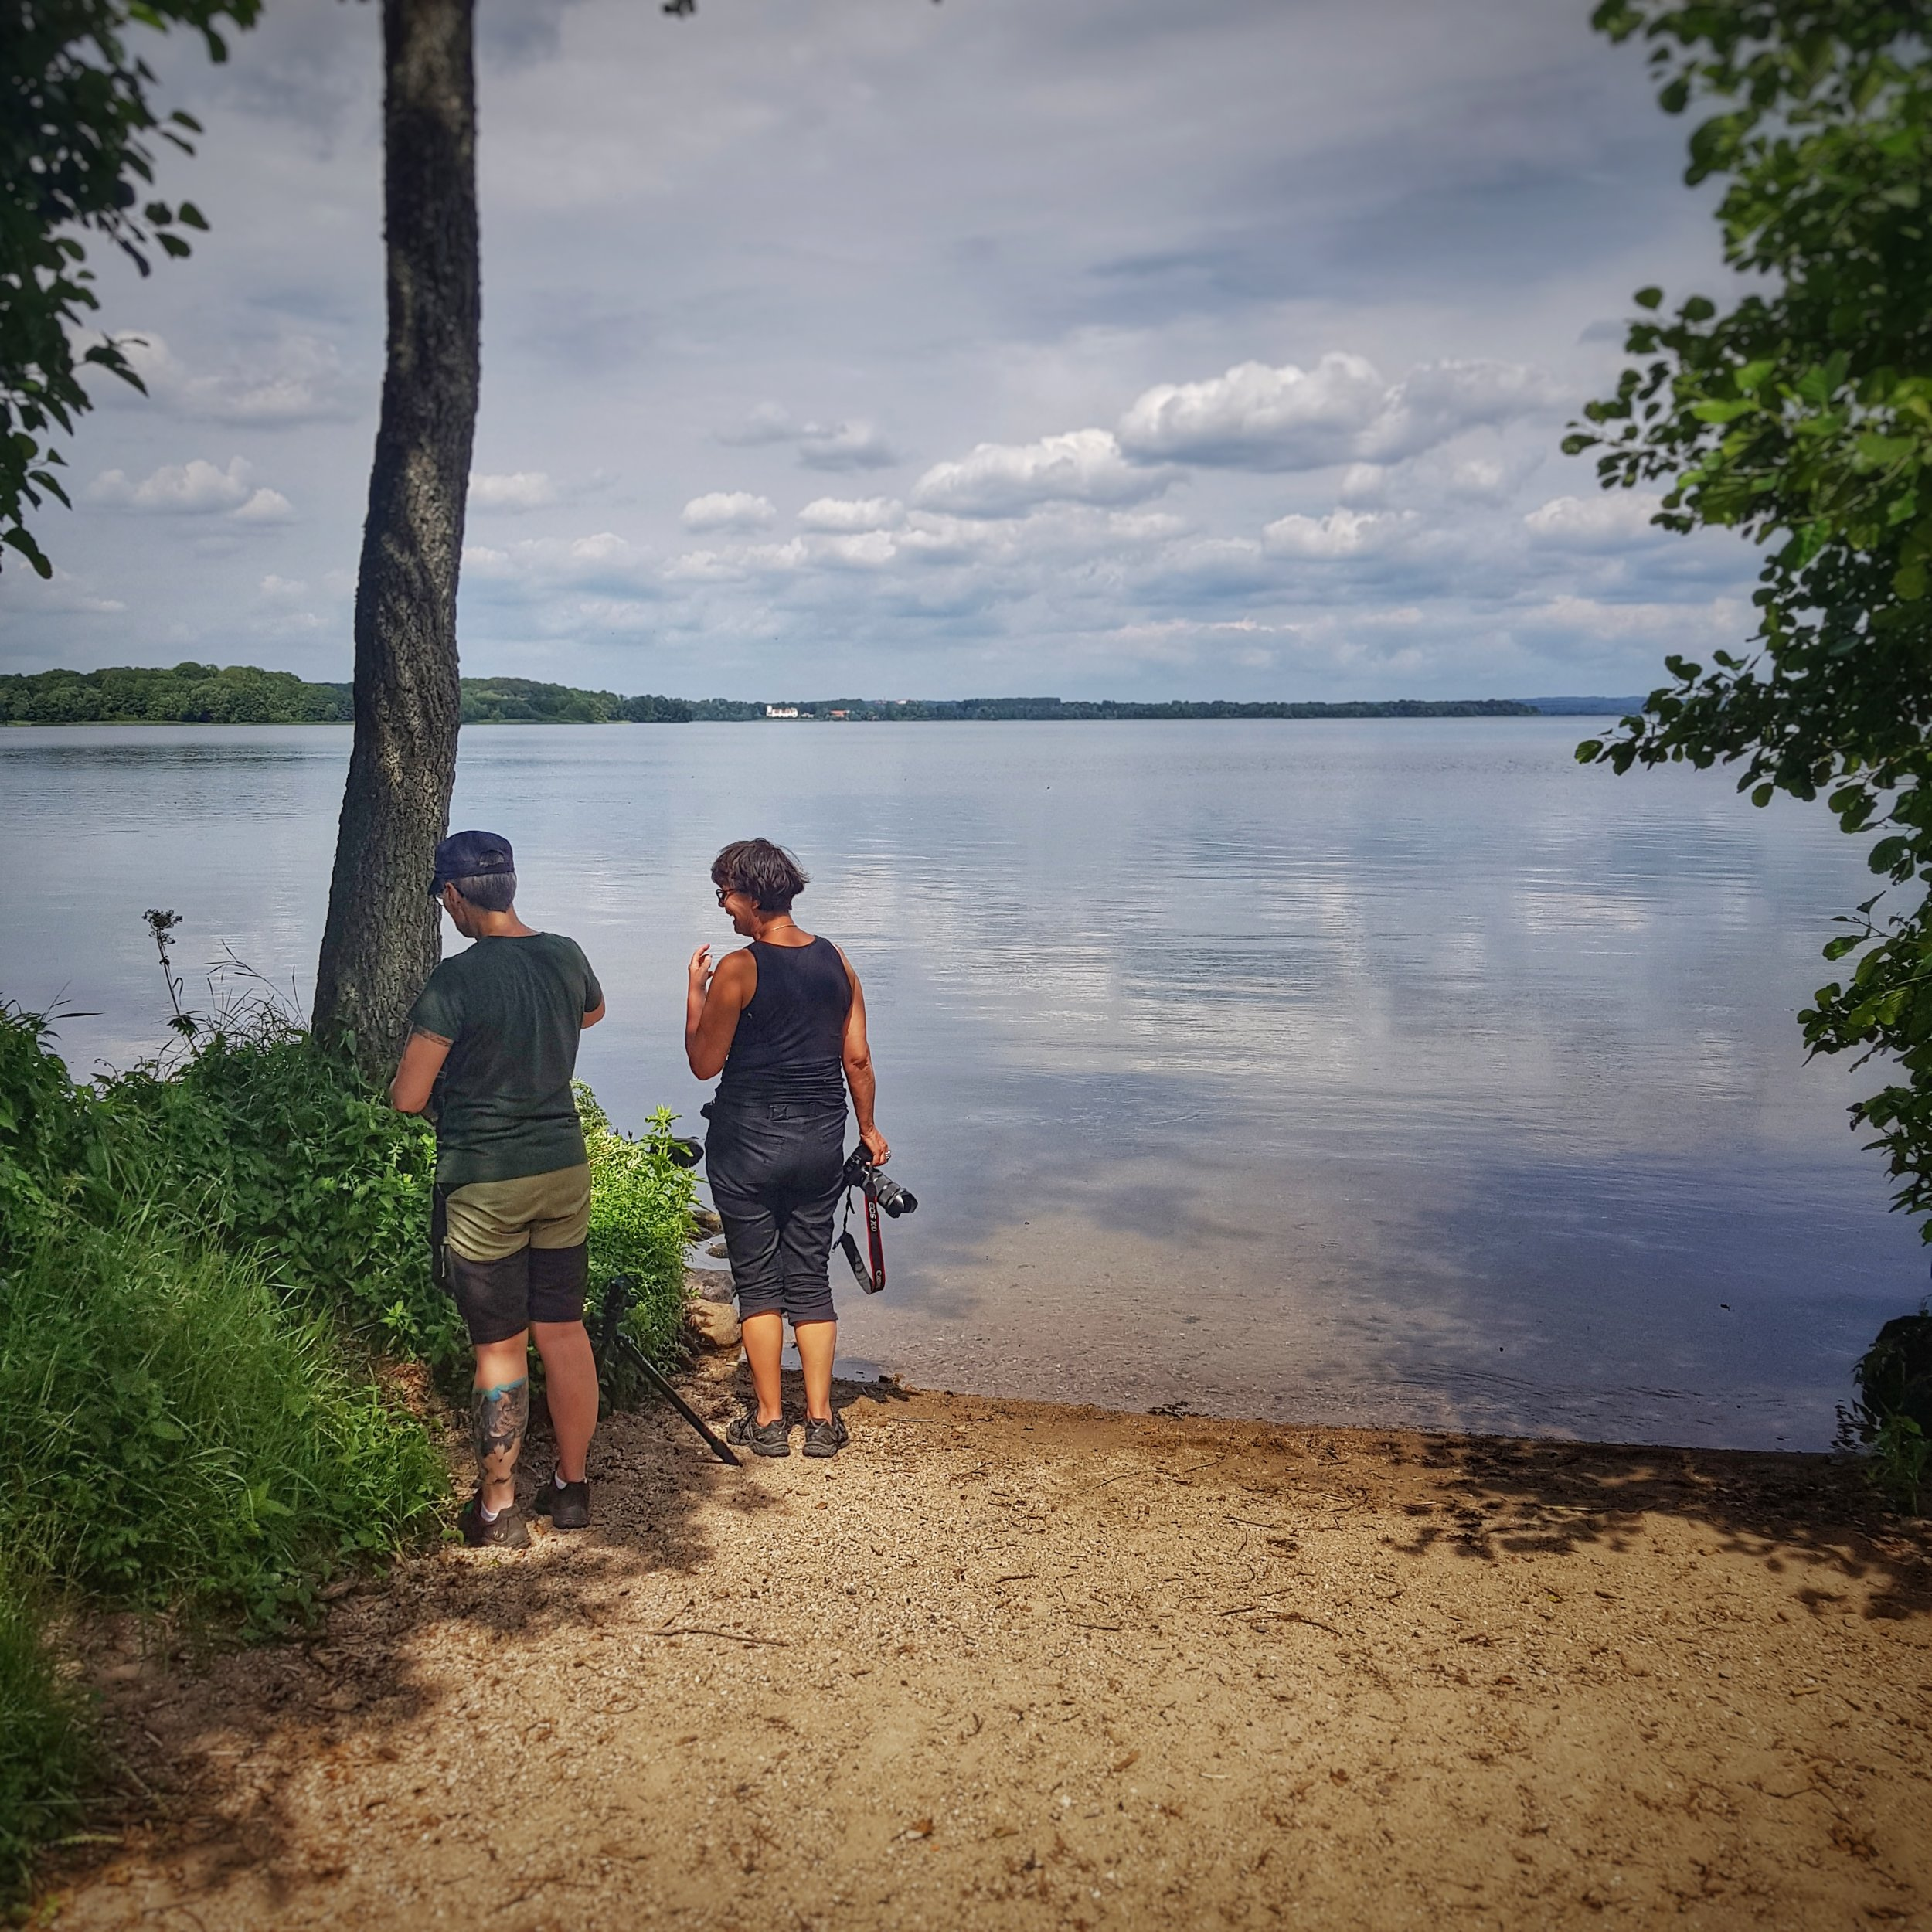 Day 201 - July 20: Photographing at the lake